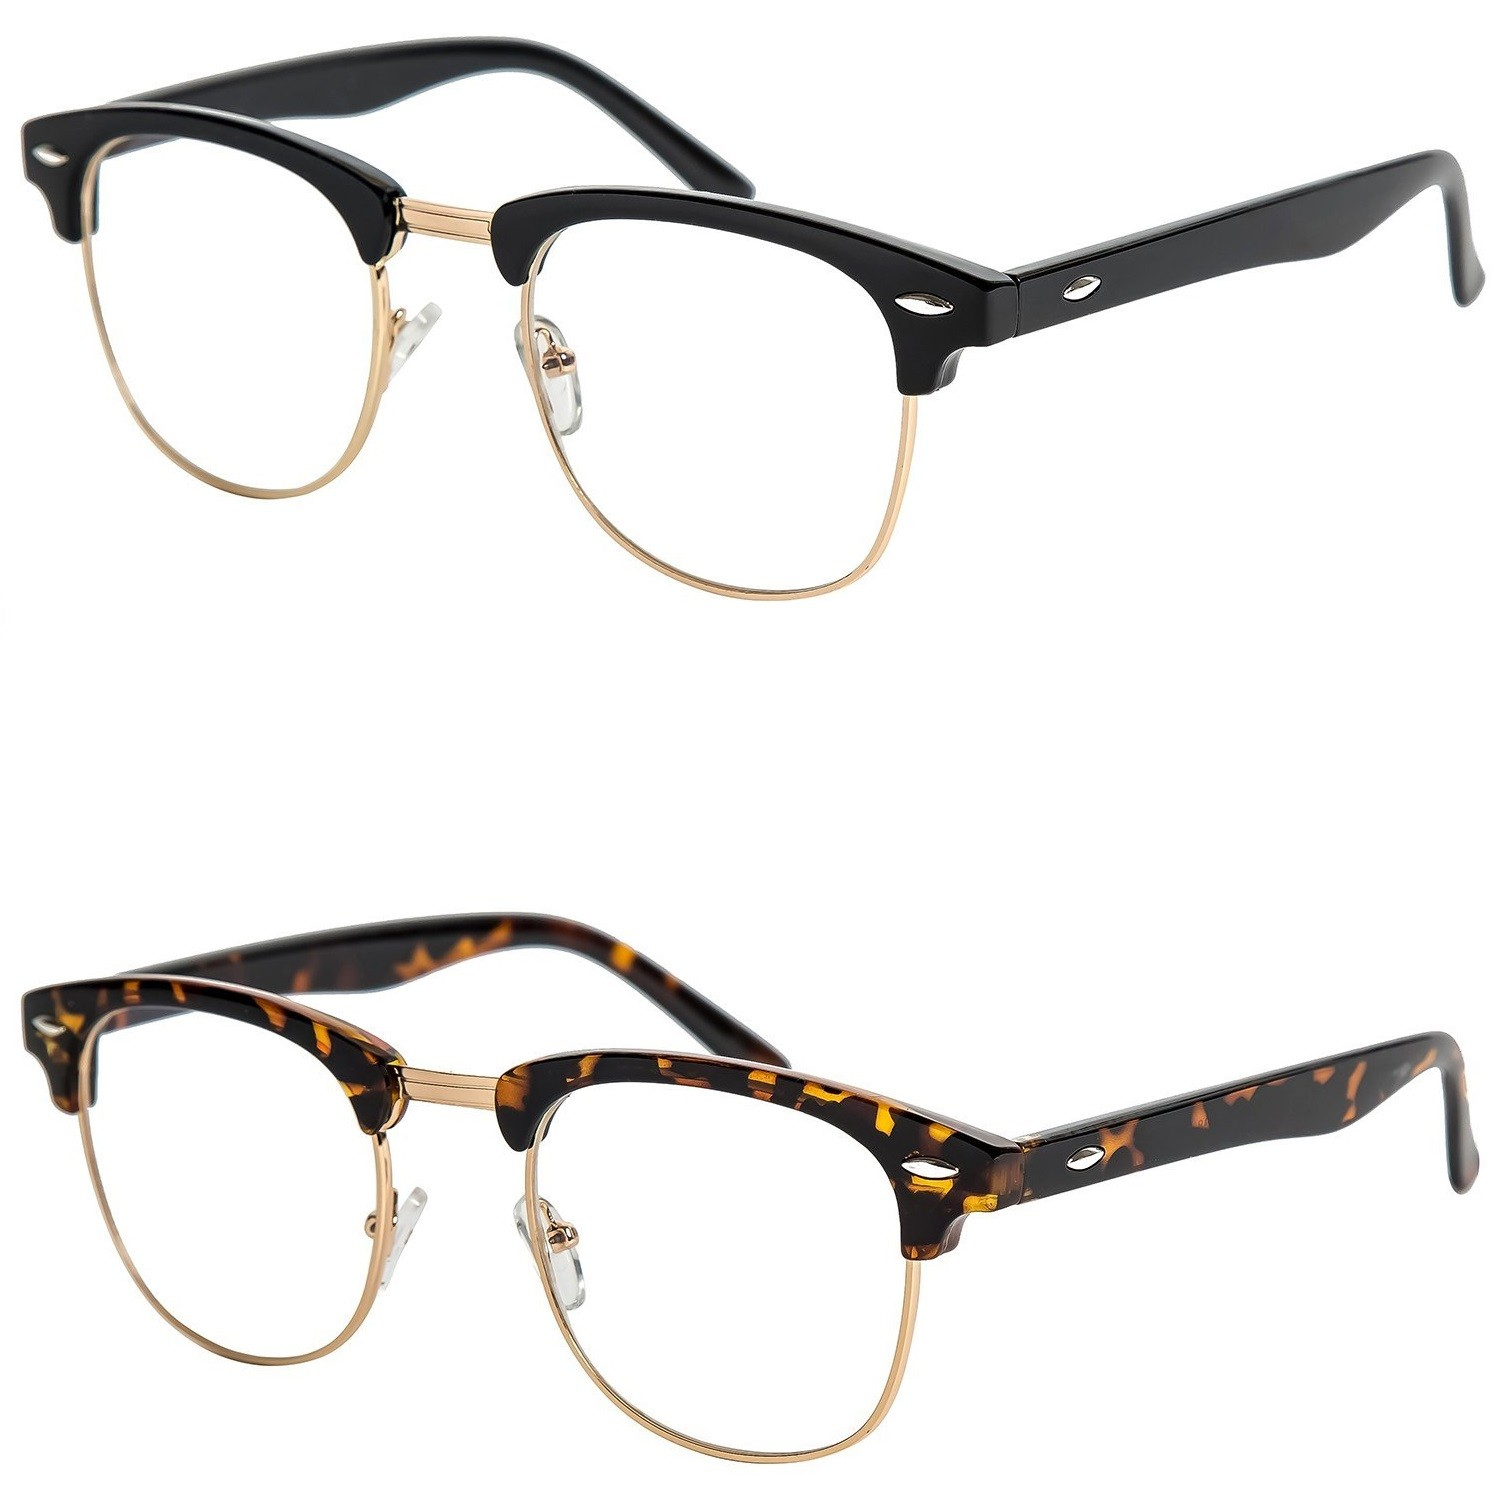 Glasses neutral KISS® - mod. DANDY Cult - optical frame HIPSTER man woman NERD vintage unisex